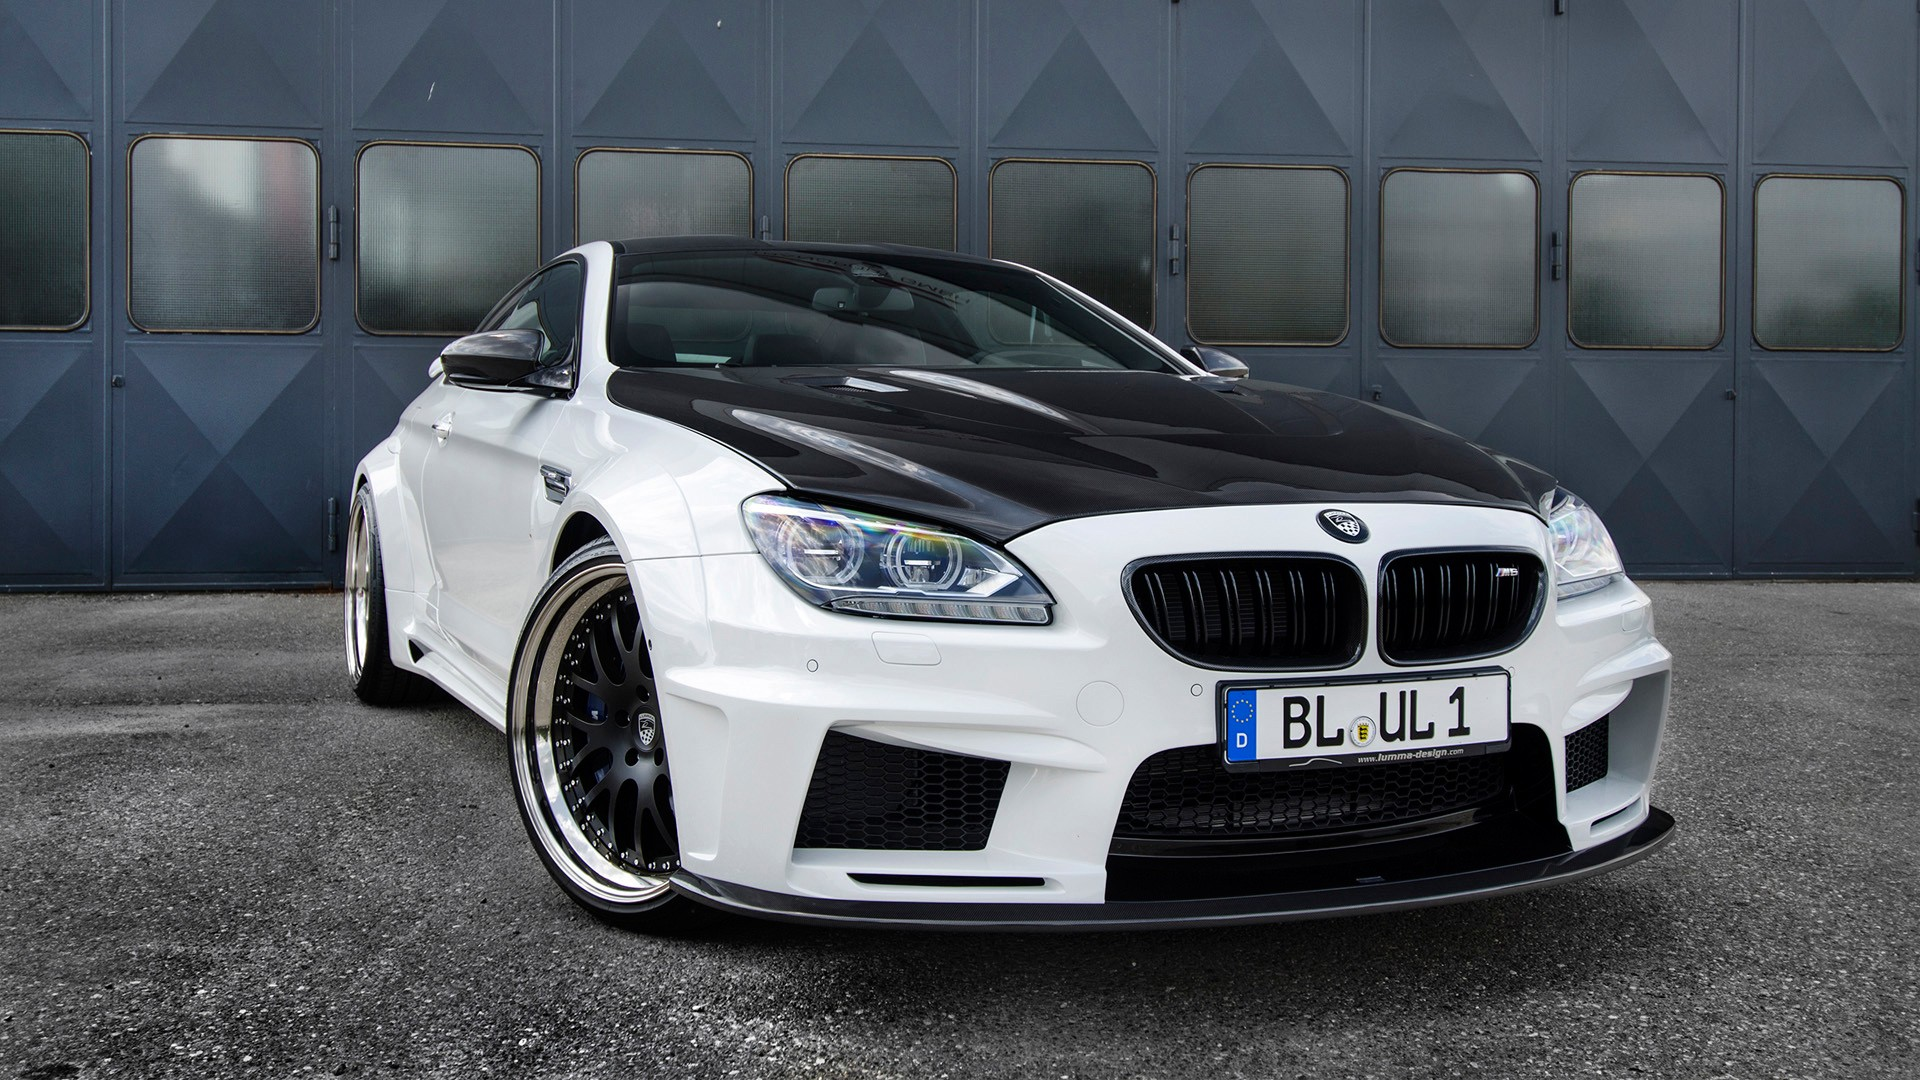 2013 Bmw M6 By Lumma Design Wallpaper Hd Car Wallpapers